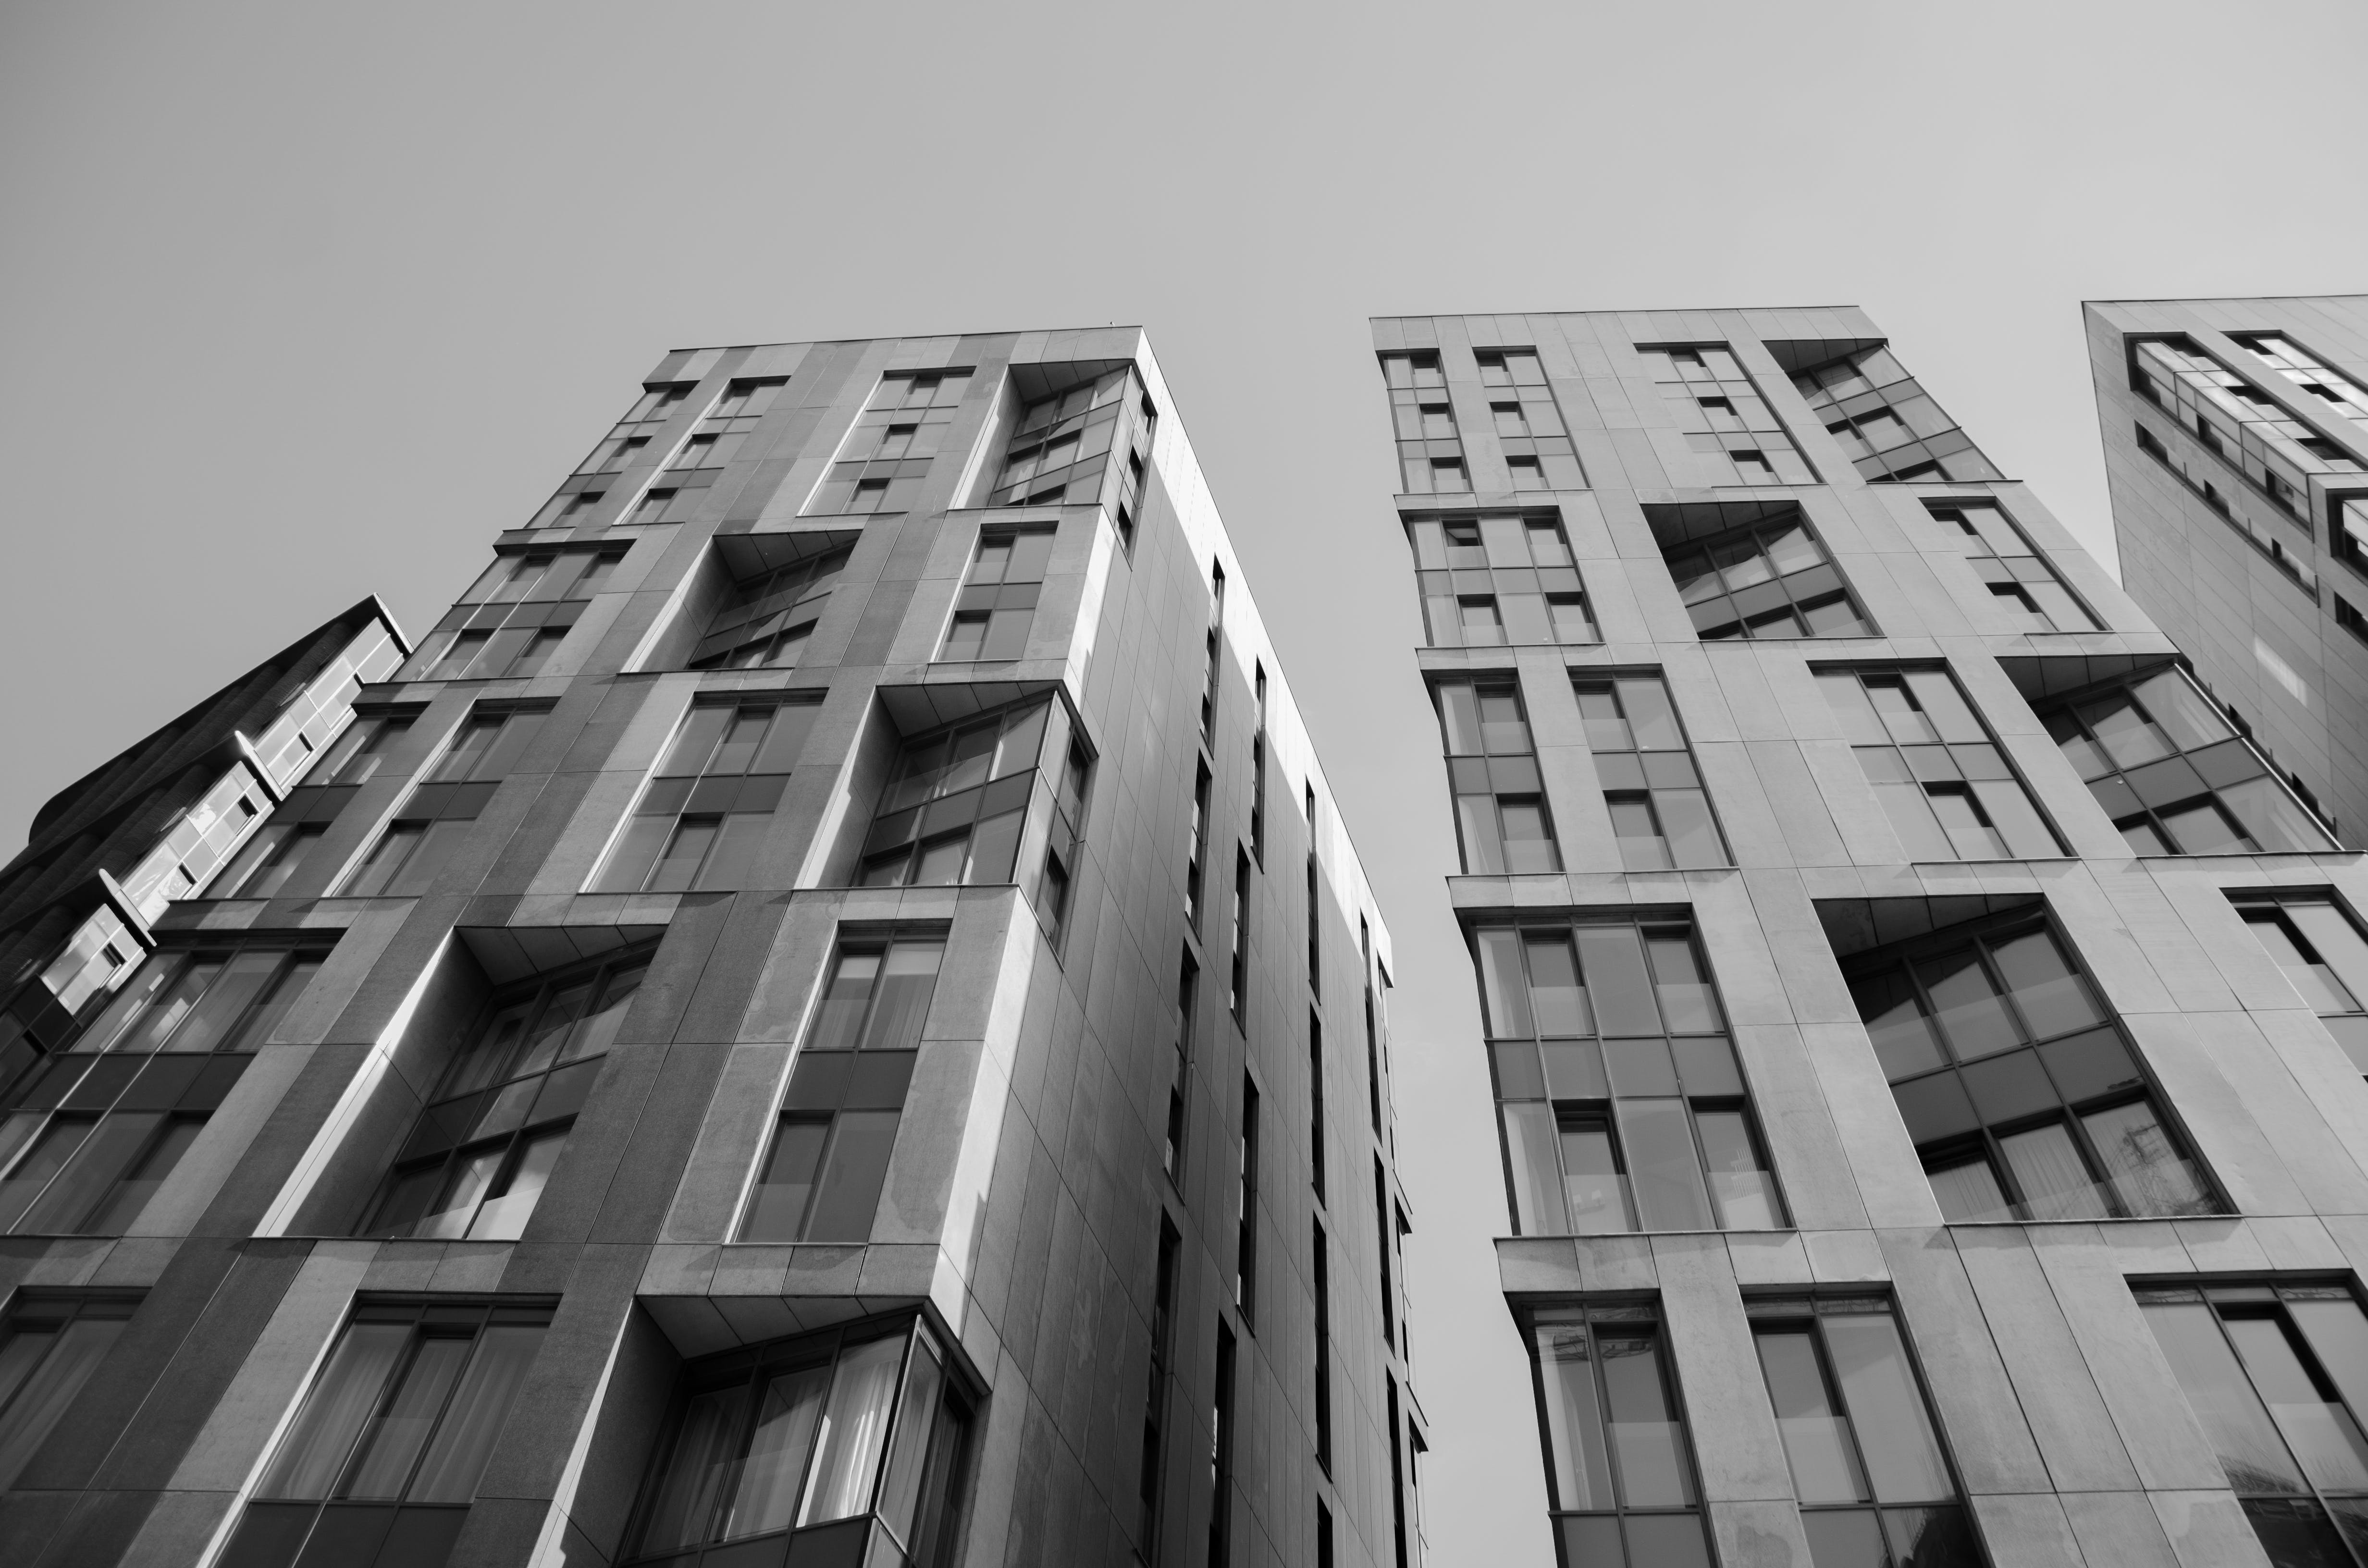 Worm's Eye View of Buildings in Grayscale Photography